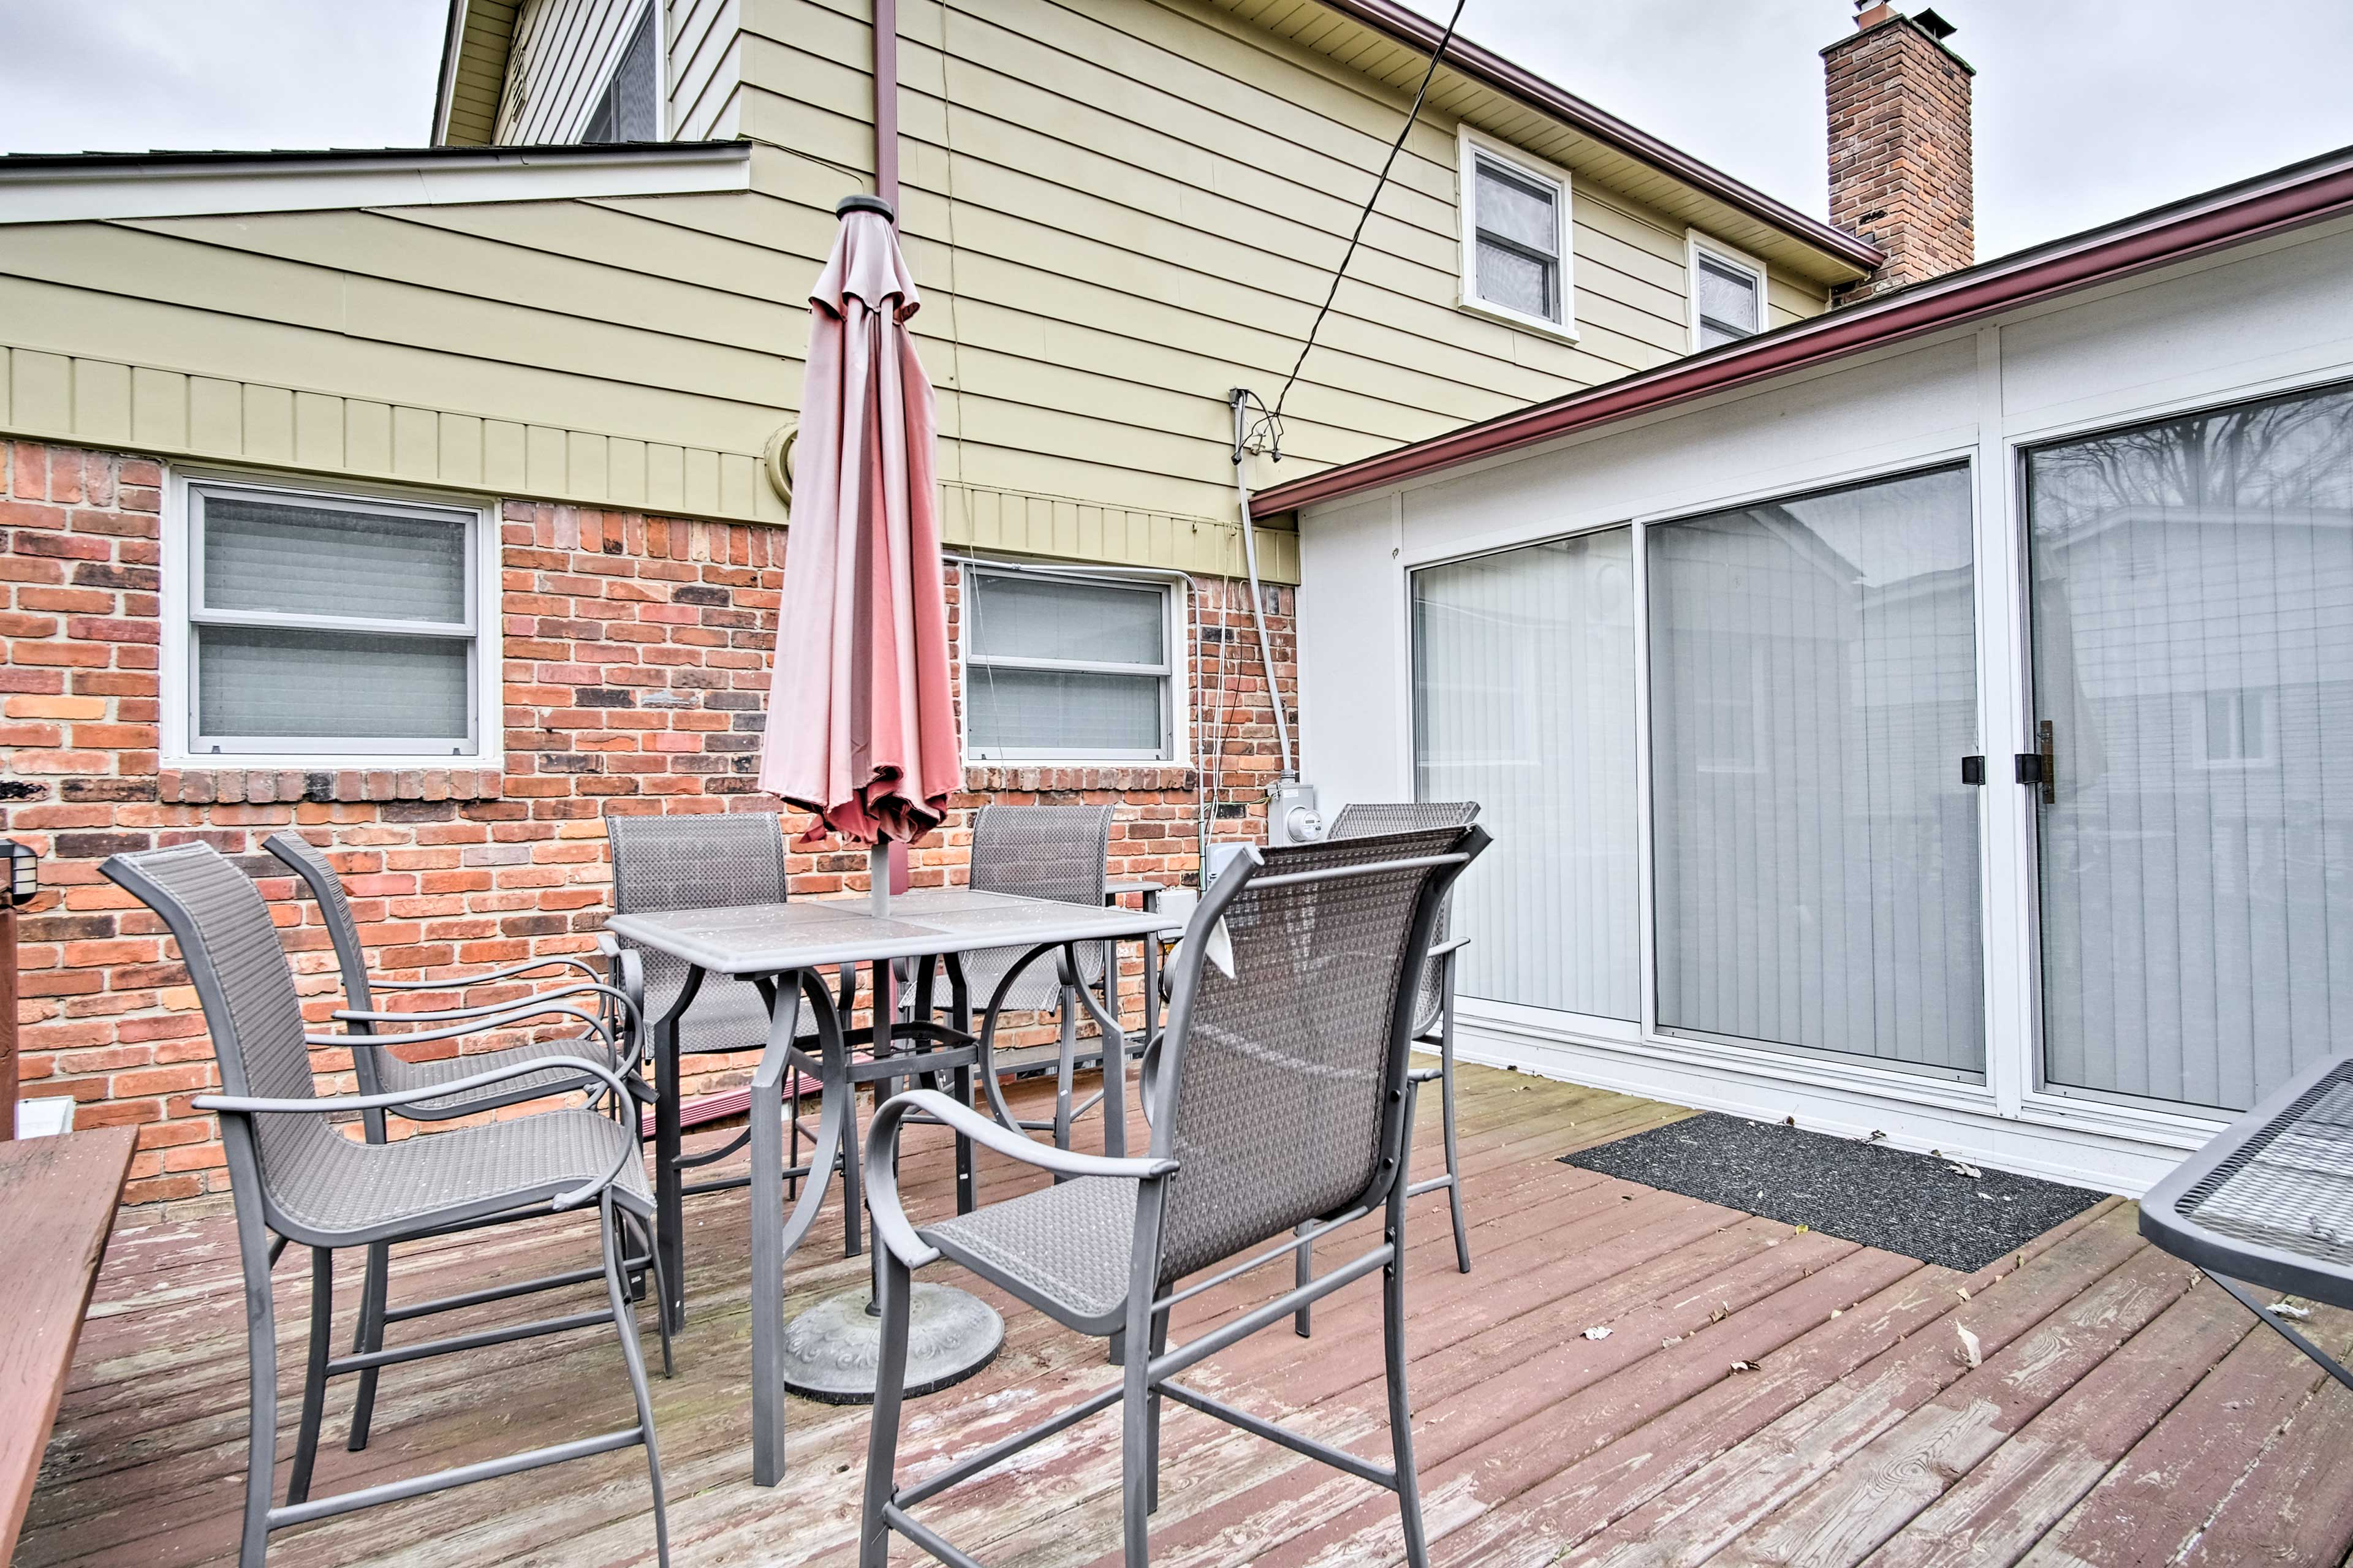 Head out back to relax on the deck.